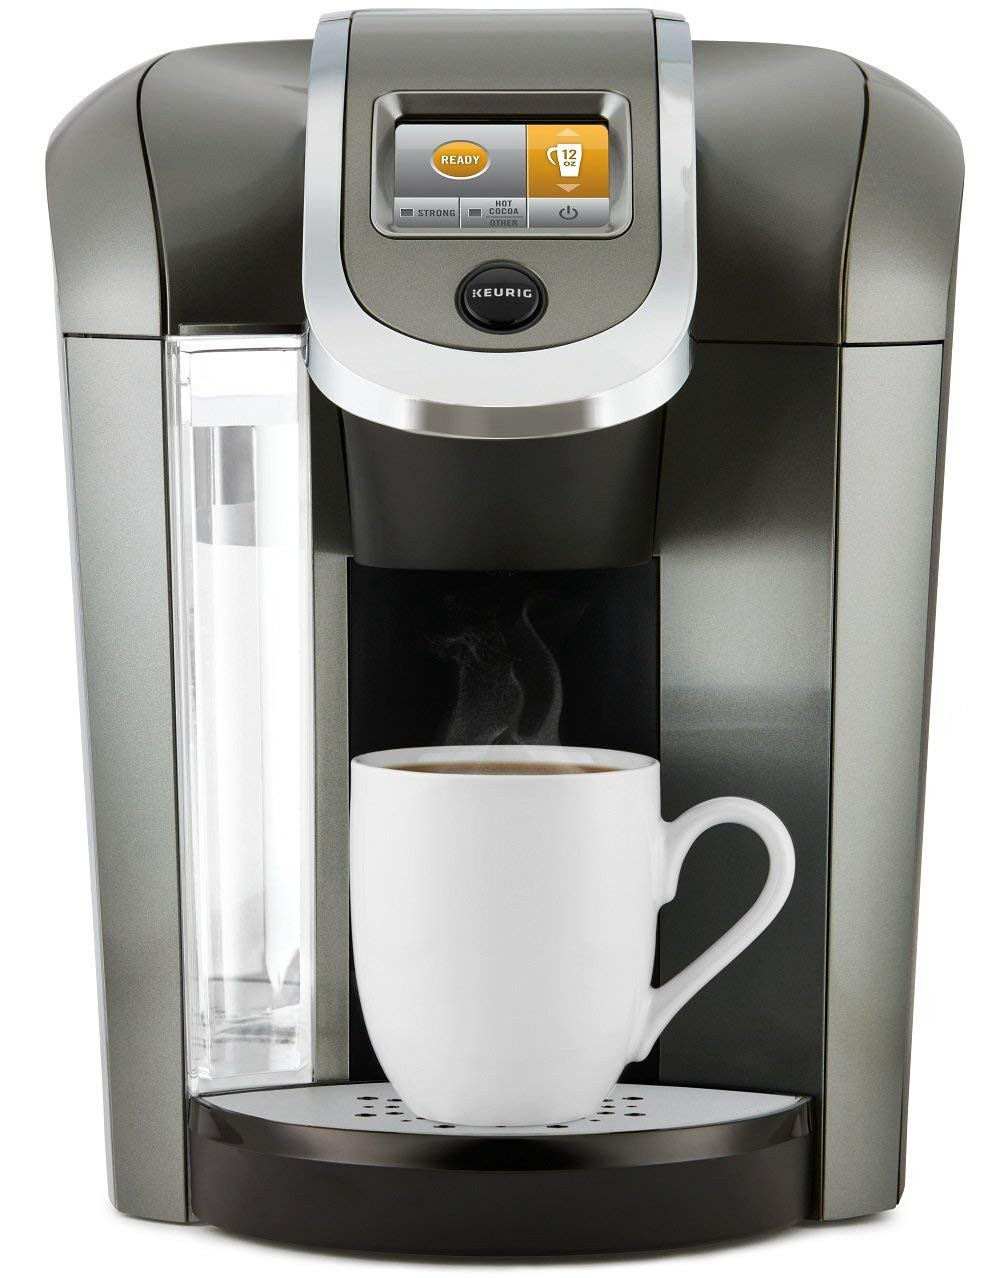 Keurig coffee makers K575